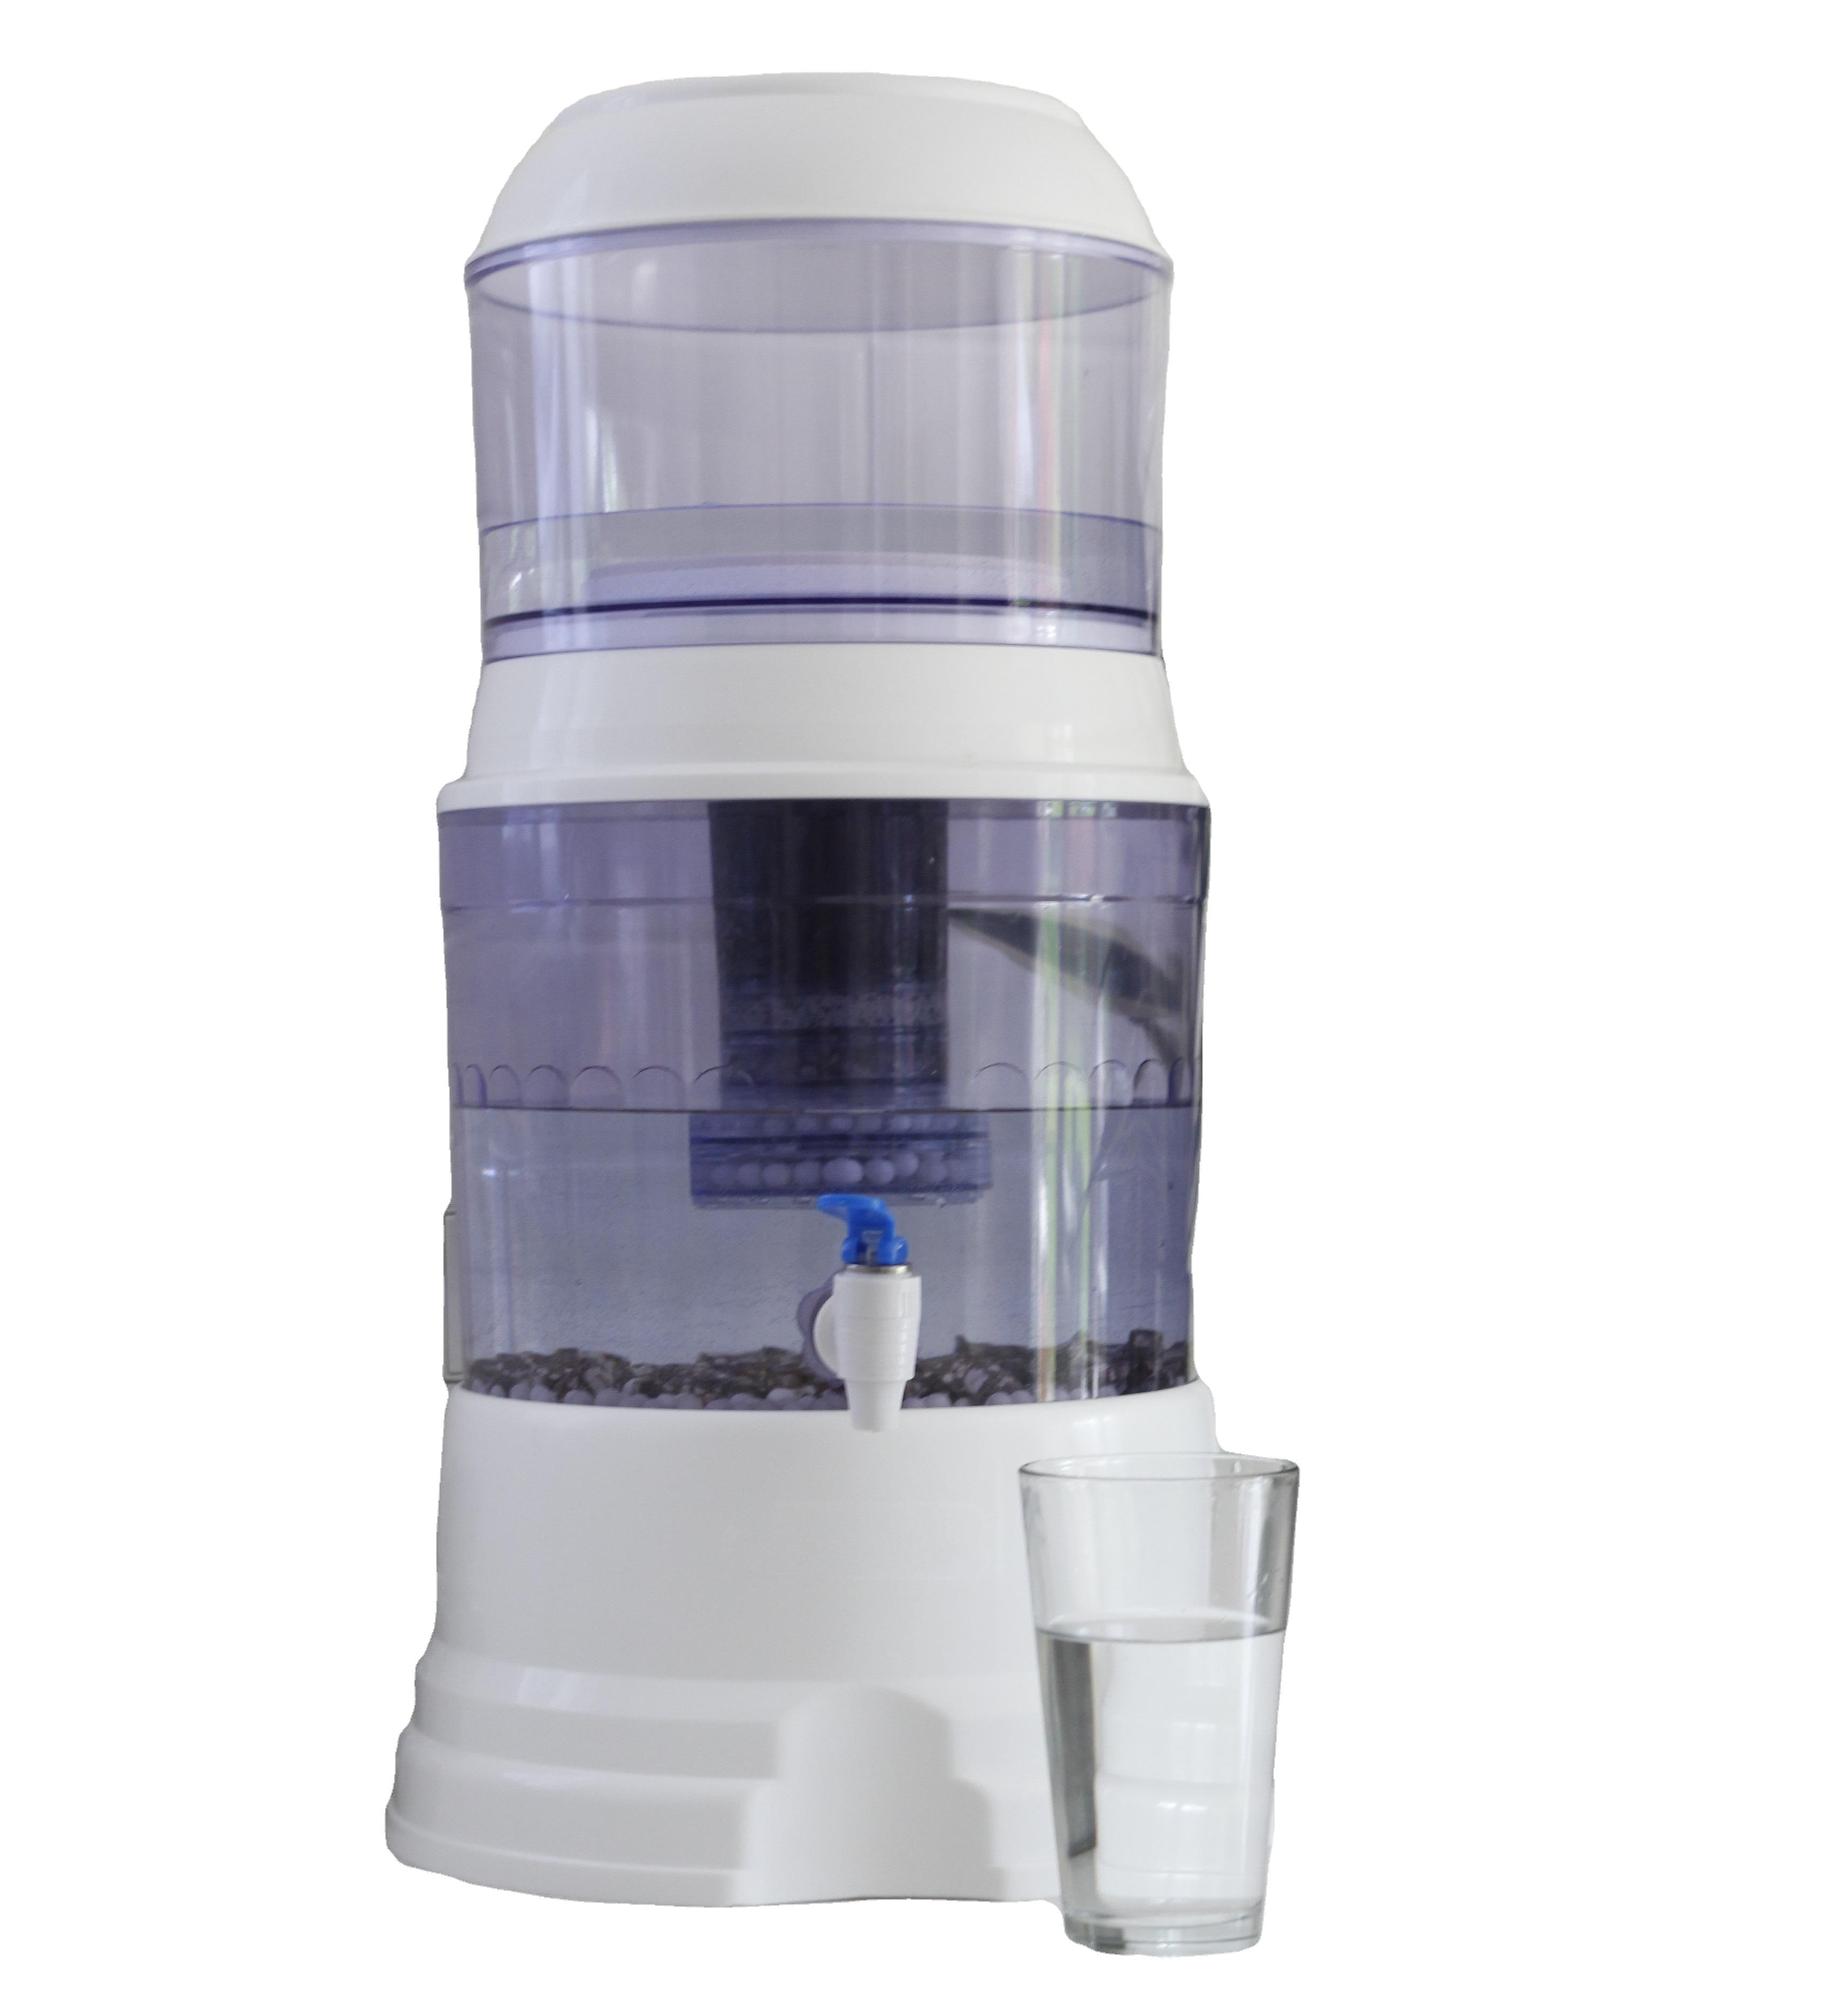 Personal drinking alkaline magnetic water filter for home,office